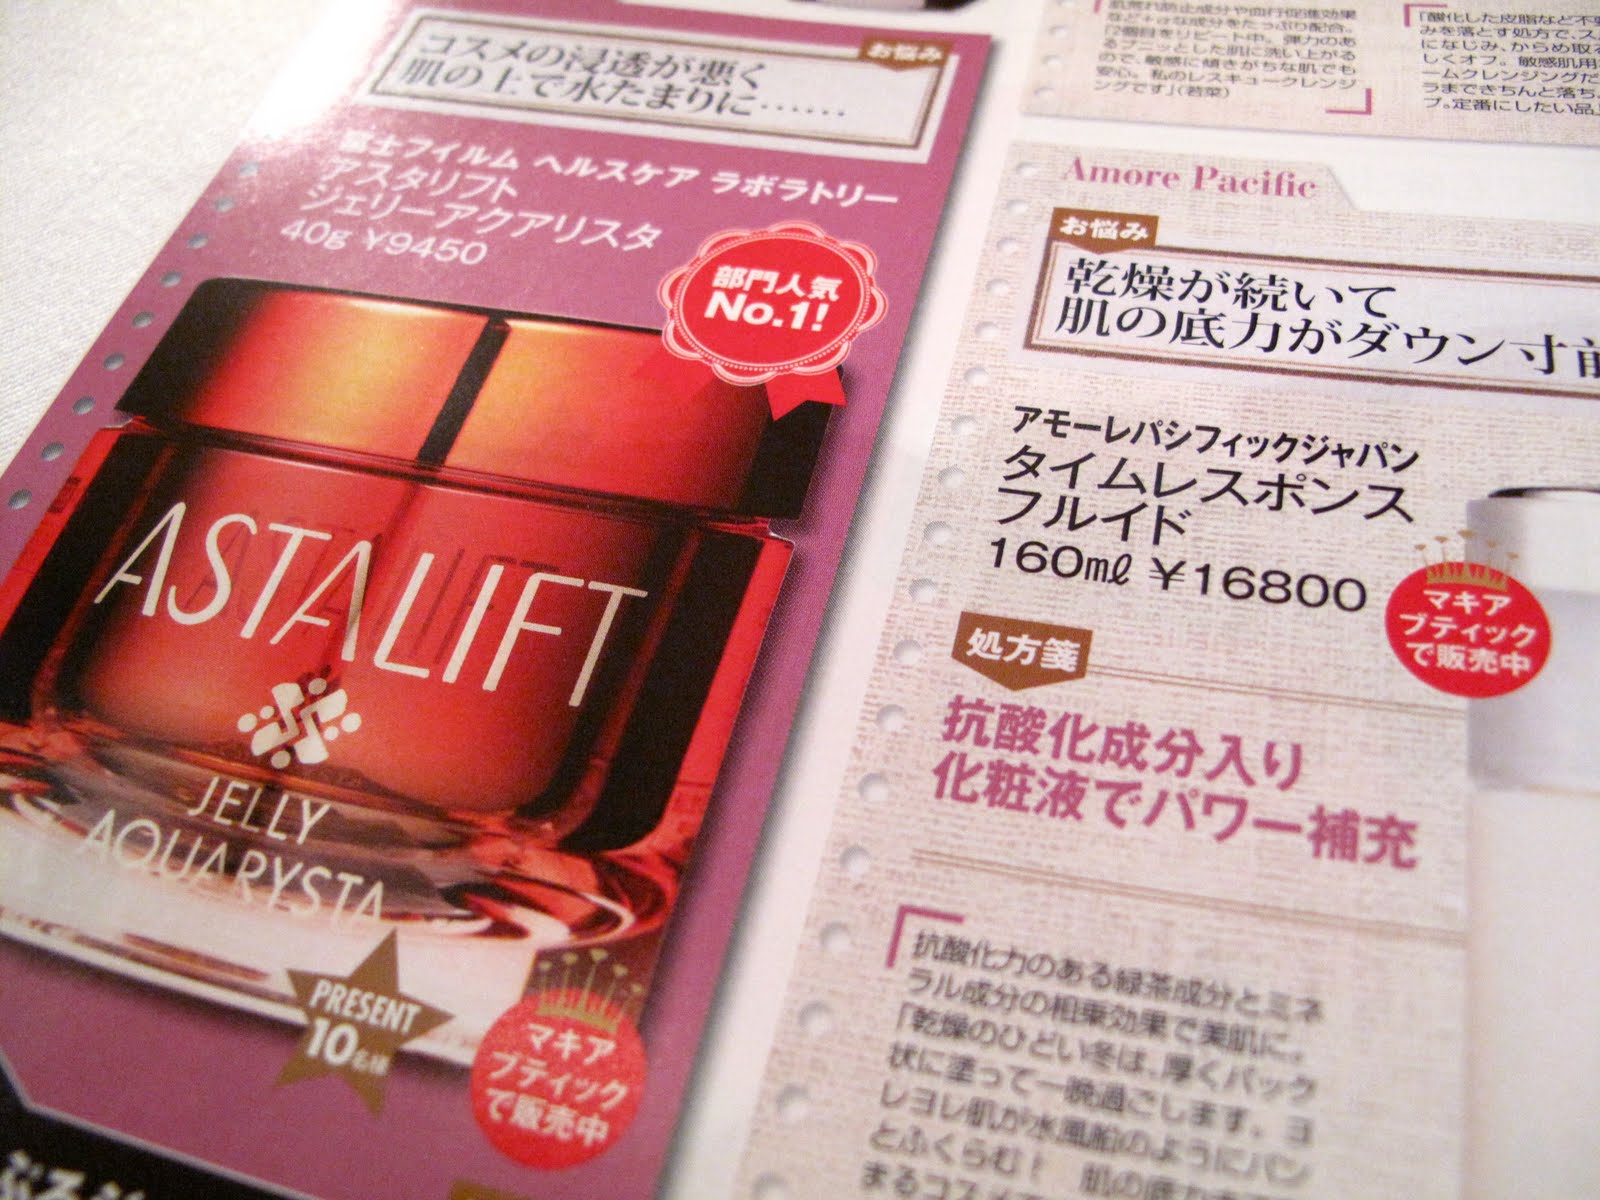 fujifilm beauty astalift jelly aquarysta